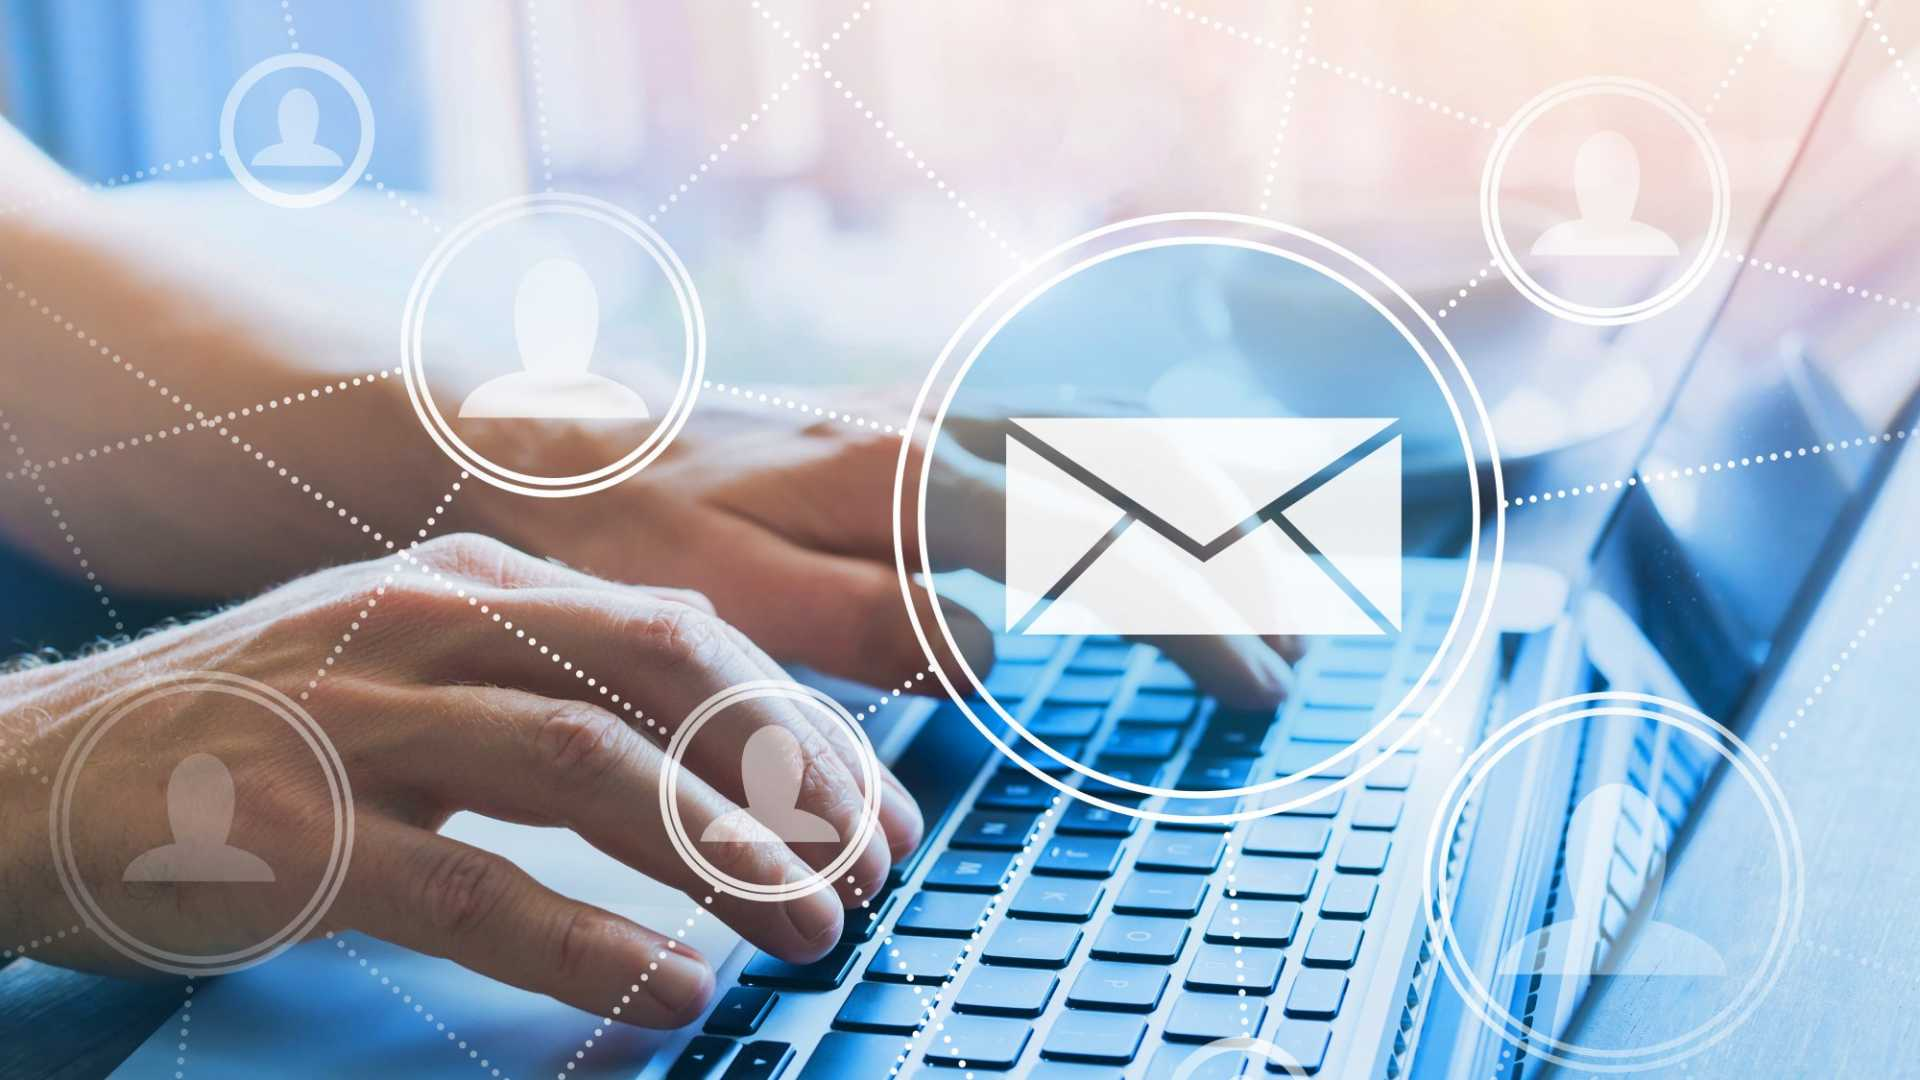 7 Ultra-Creative Ways to Grow Your Business Email List